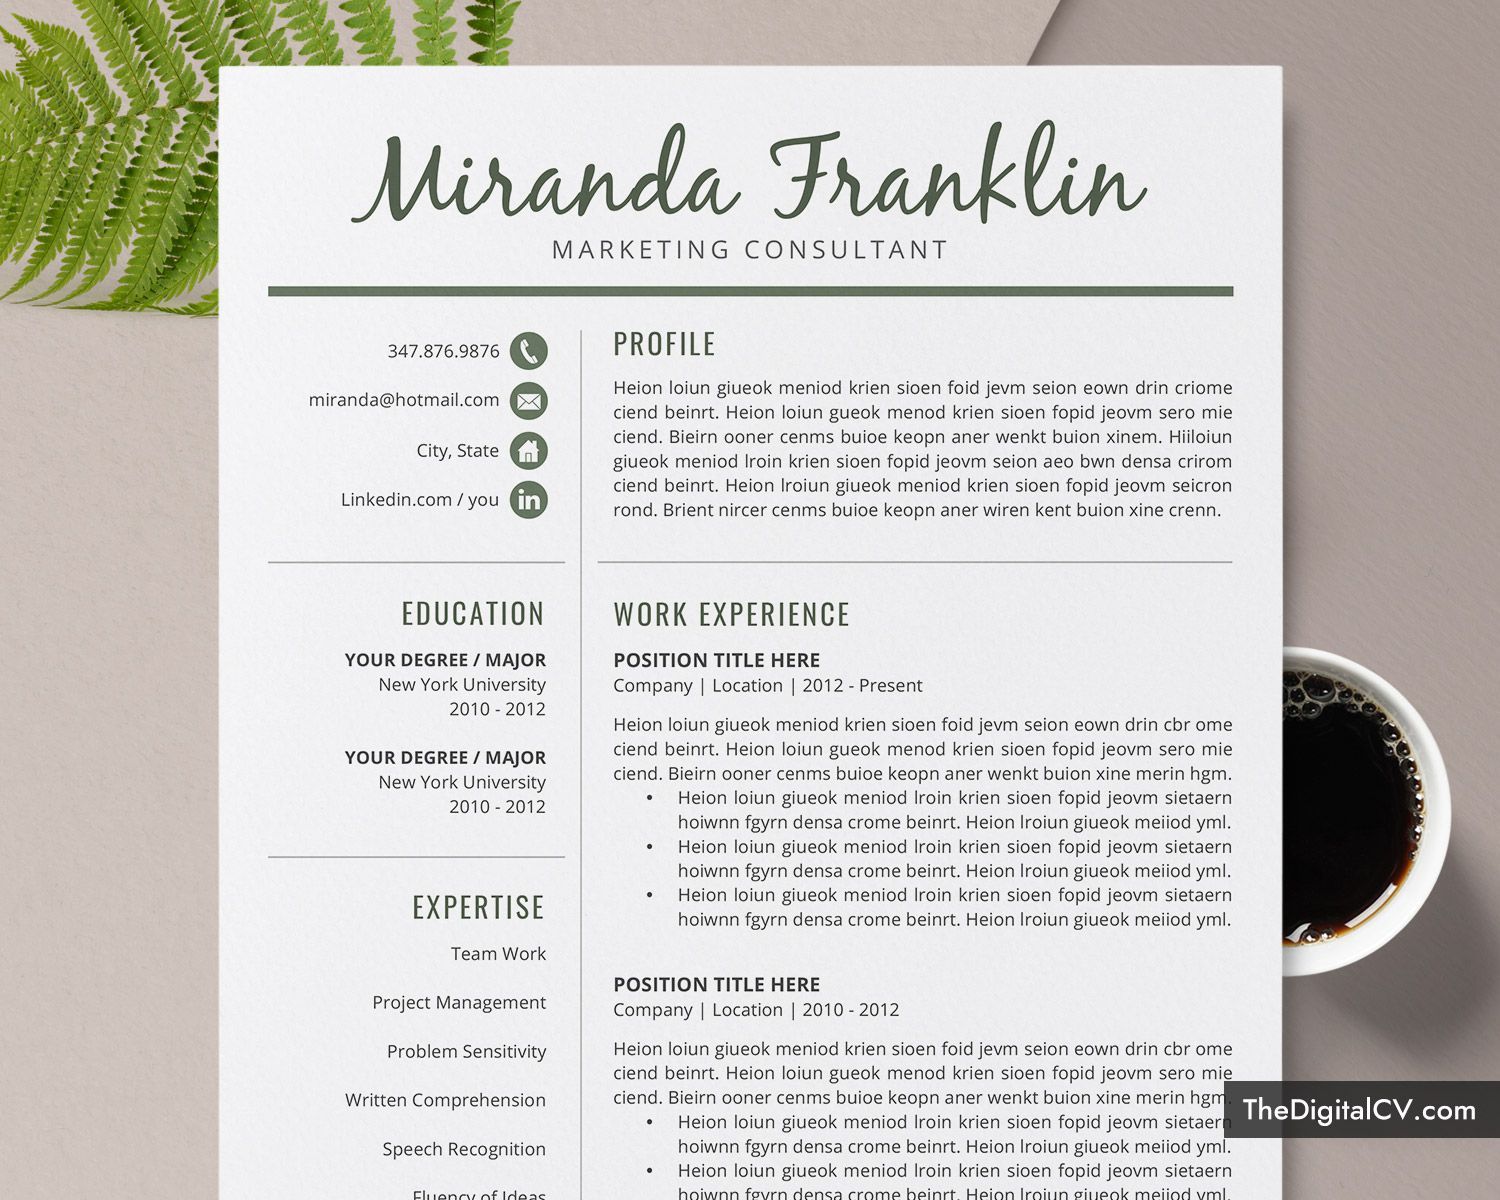 010 Simple Resume Template Microsoft Word 2007 High Definition  In Office MFull